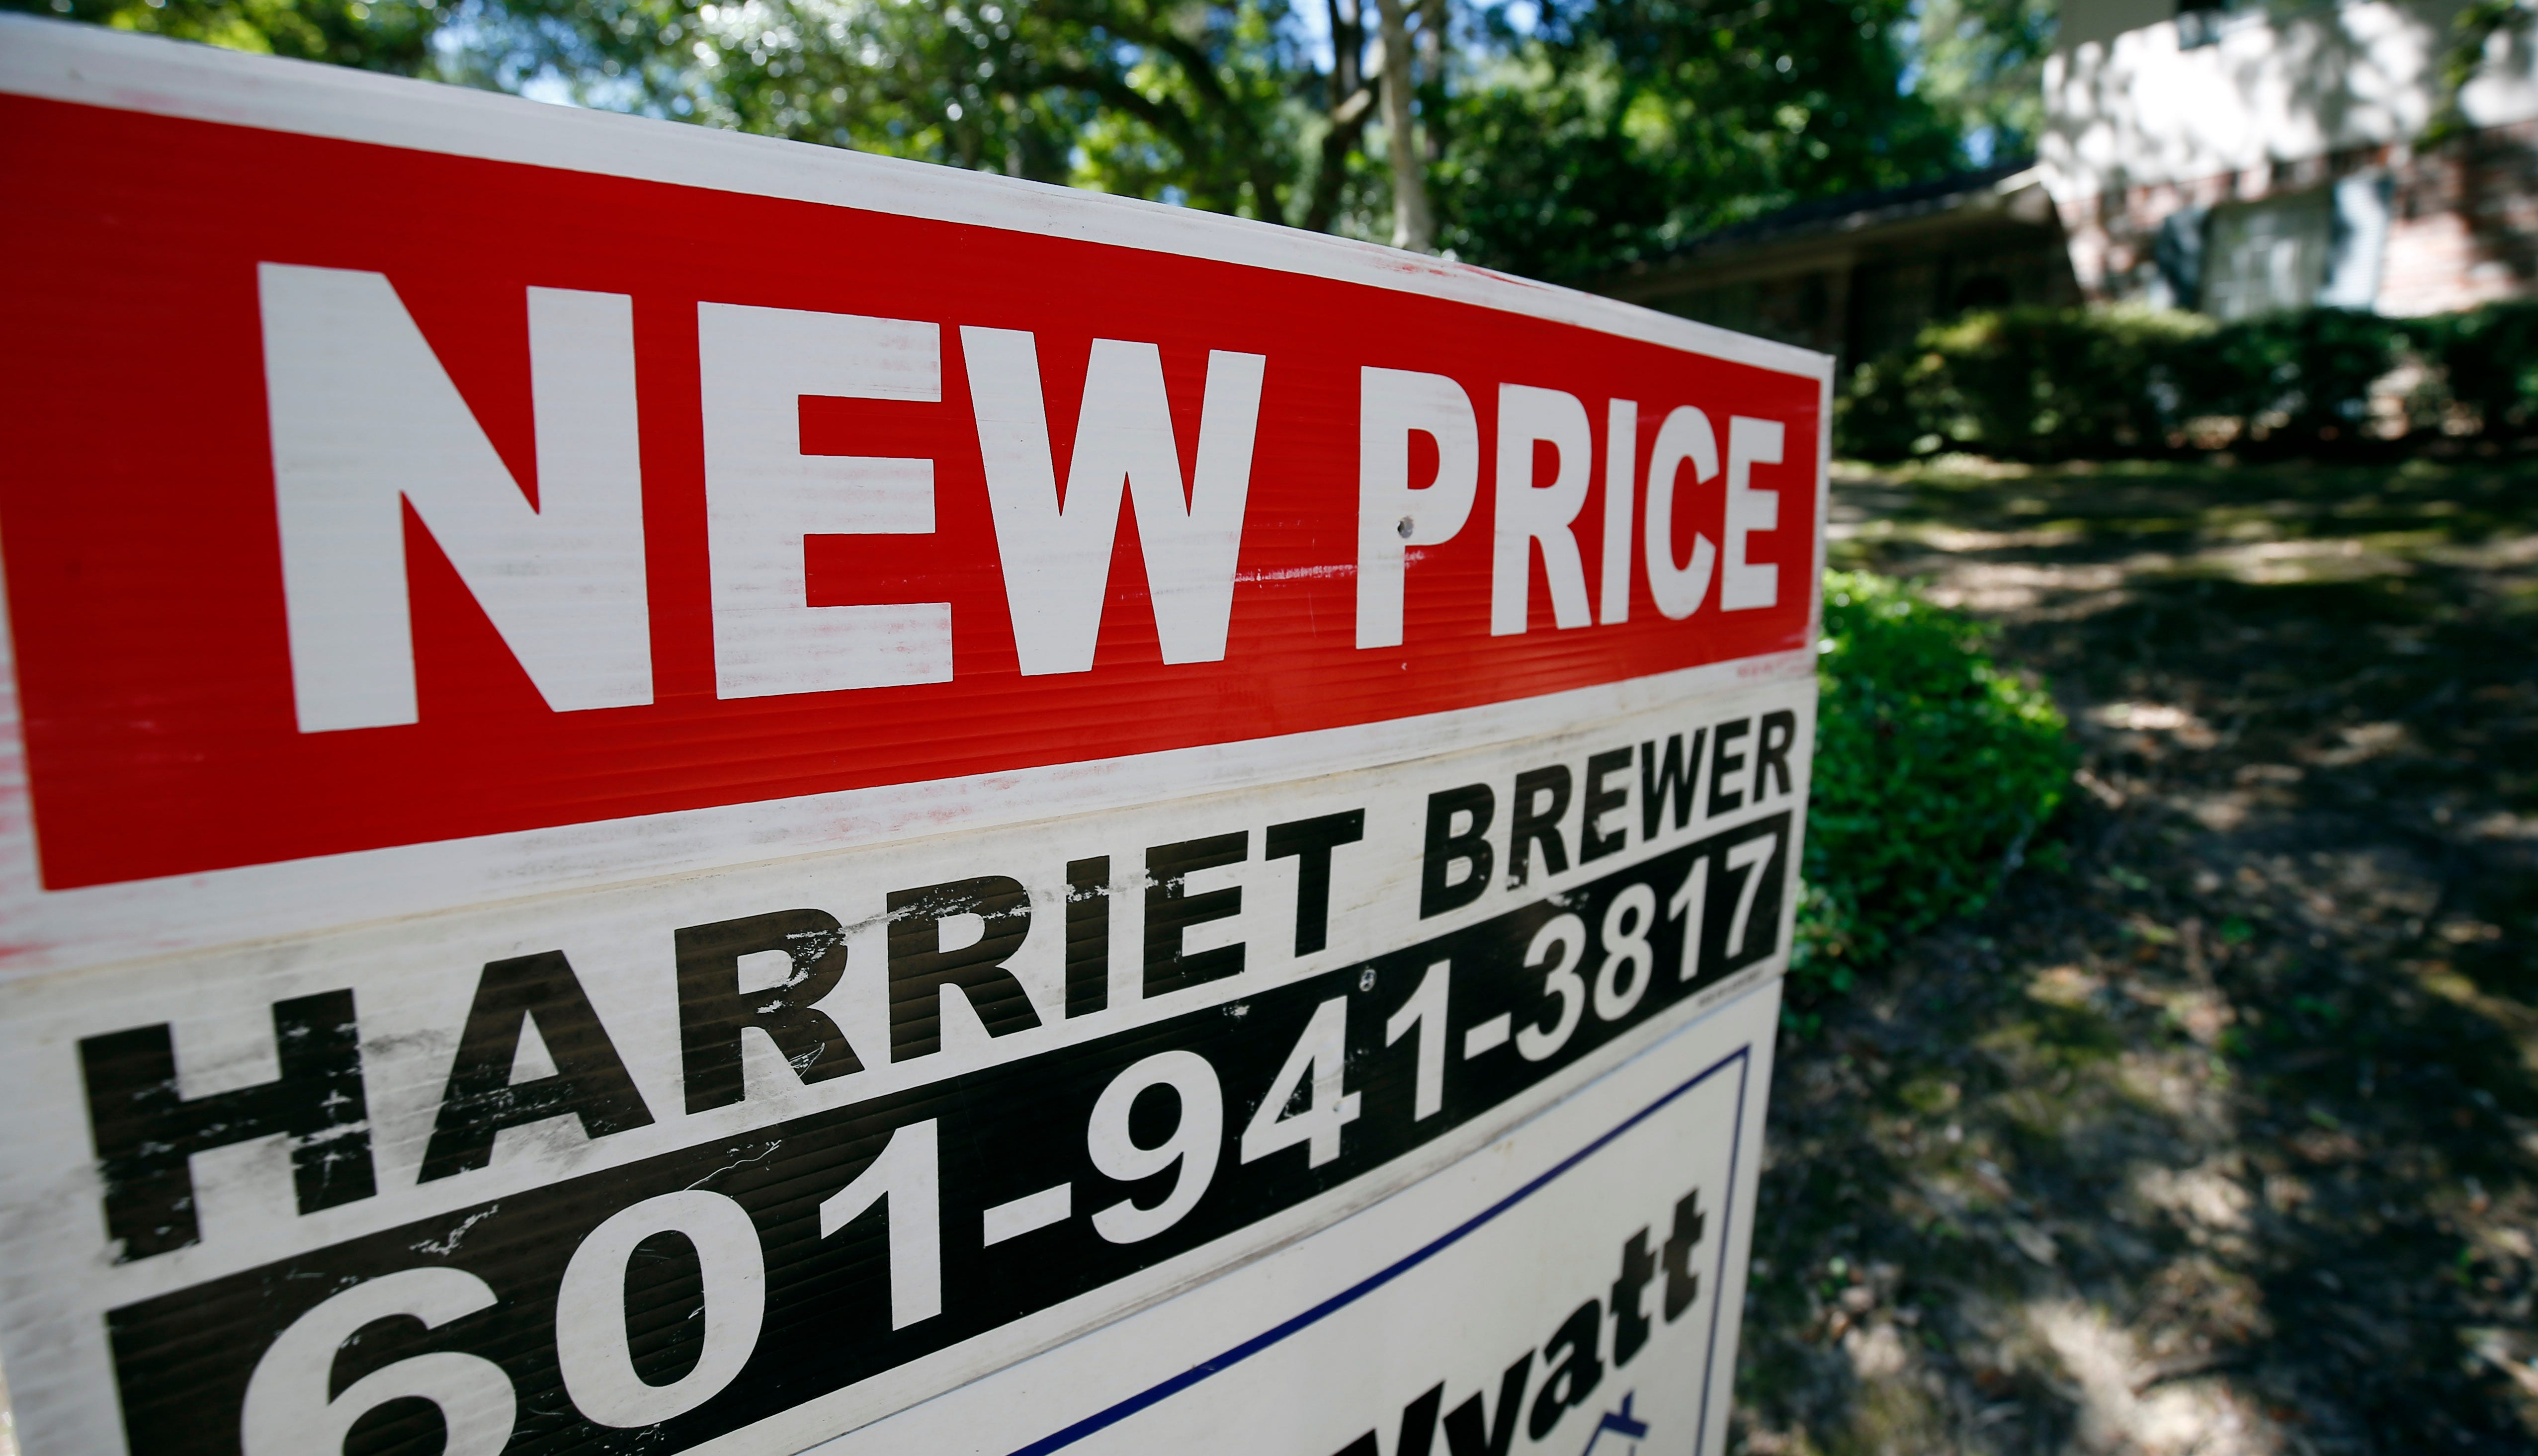 Home price gains slowed in April, even as mortgage rates fall